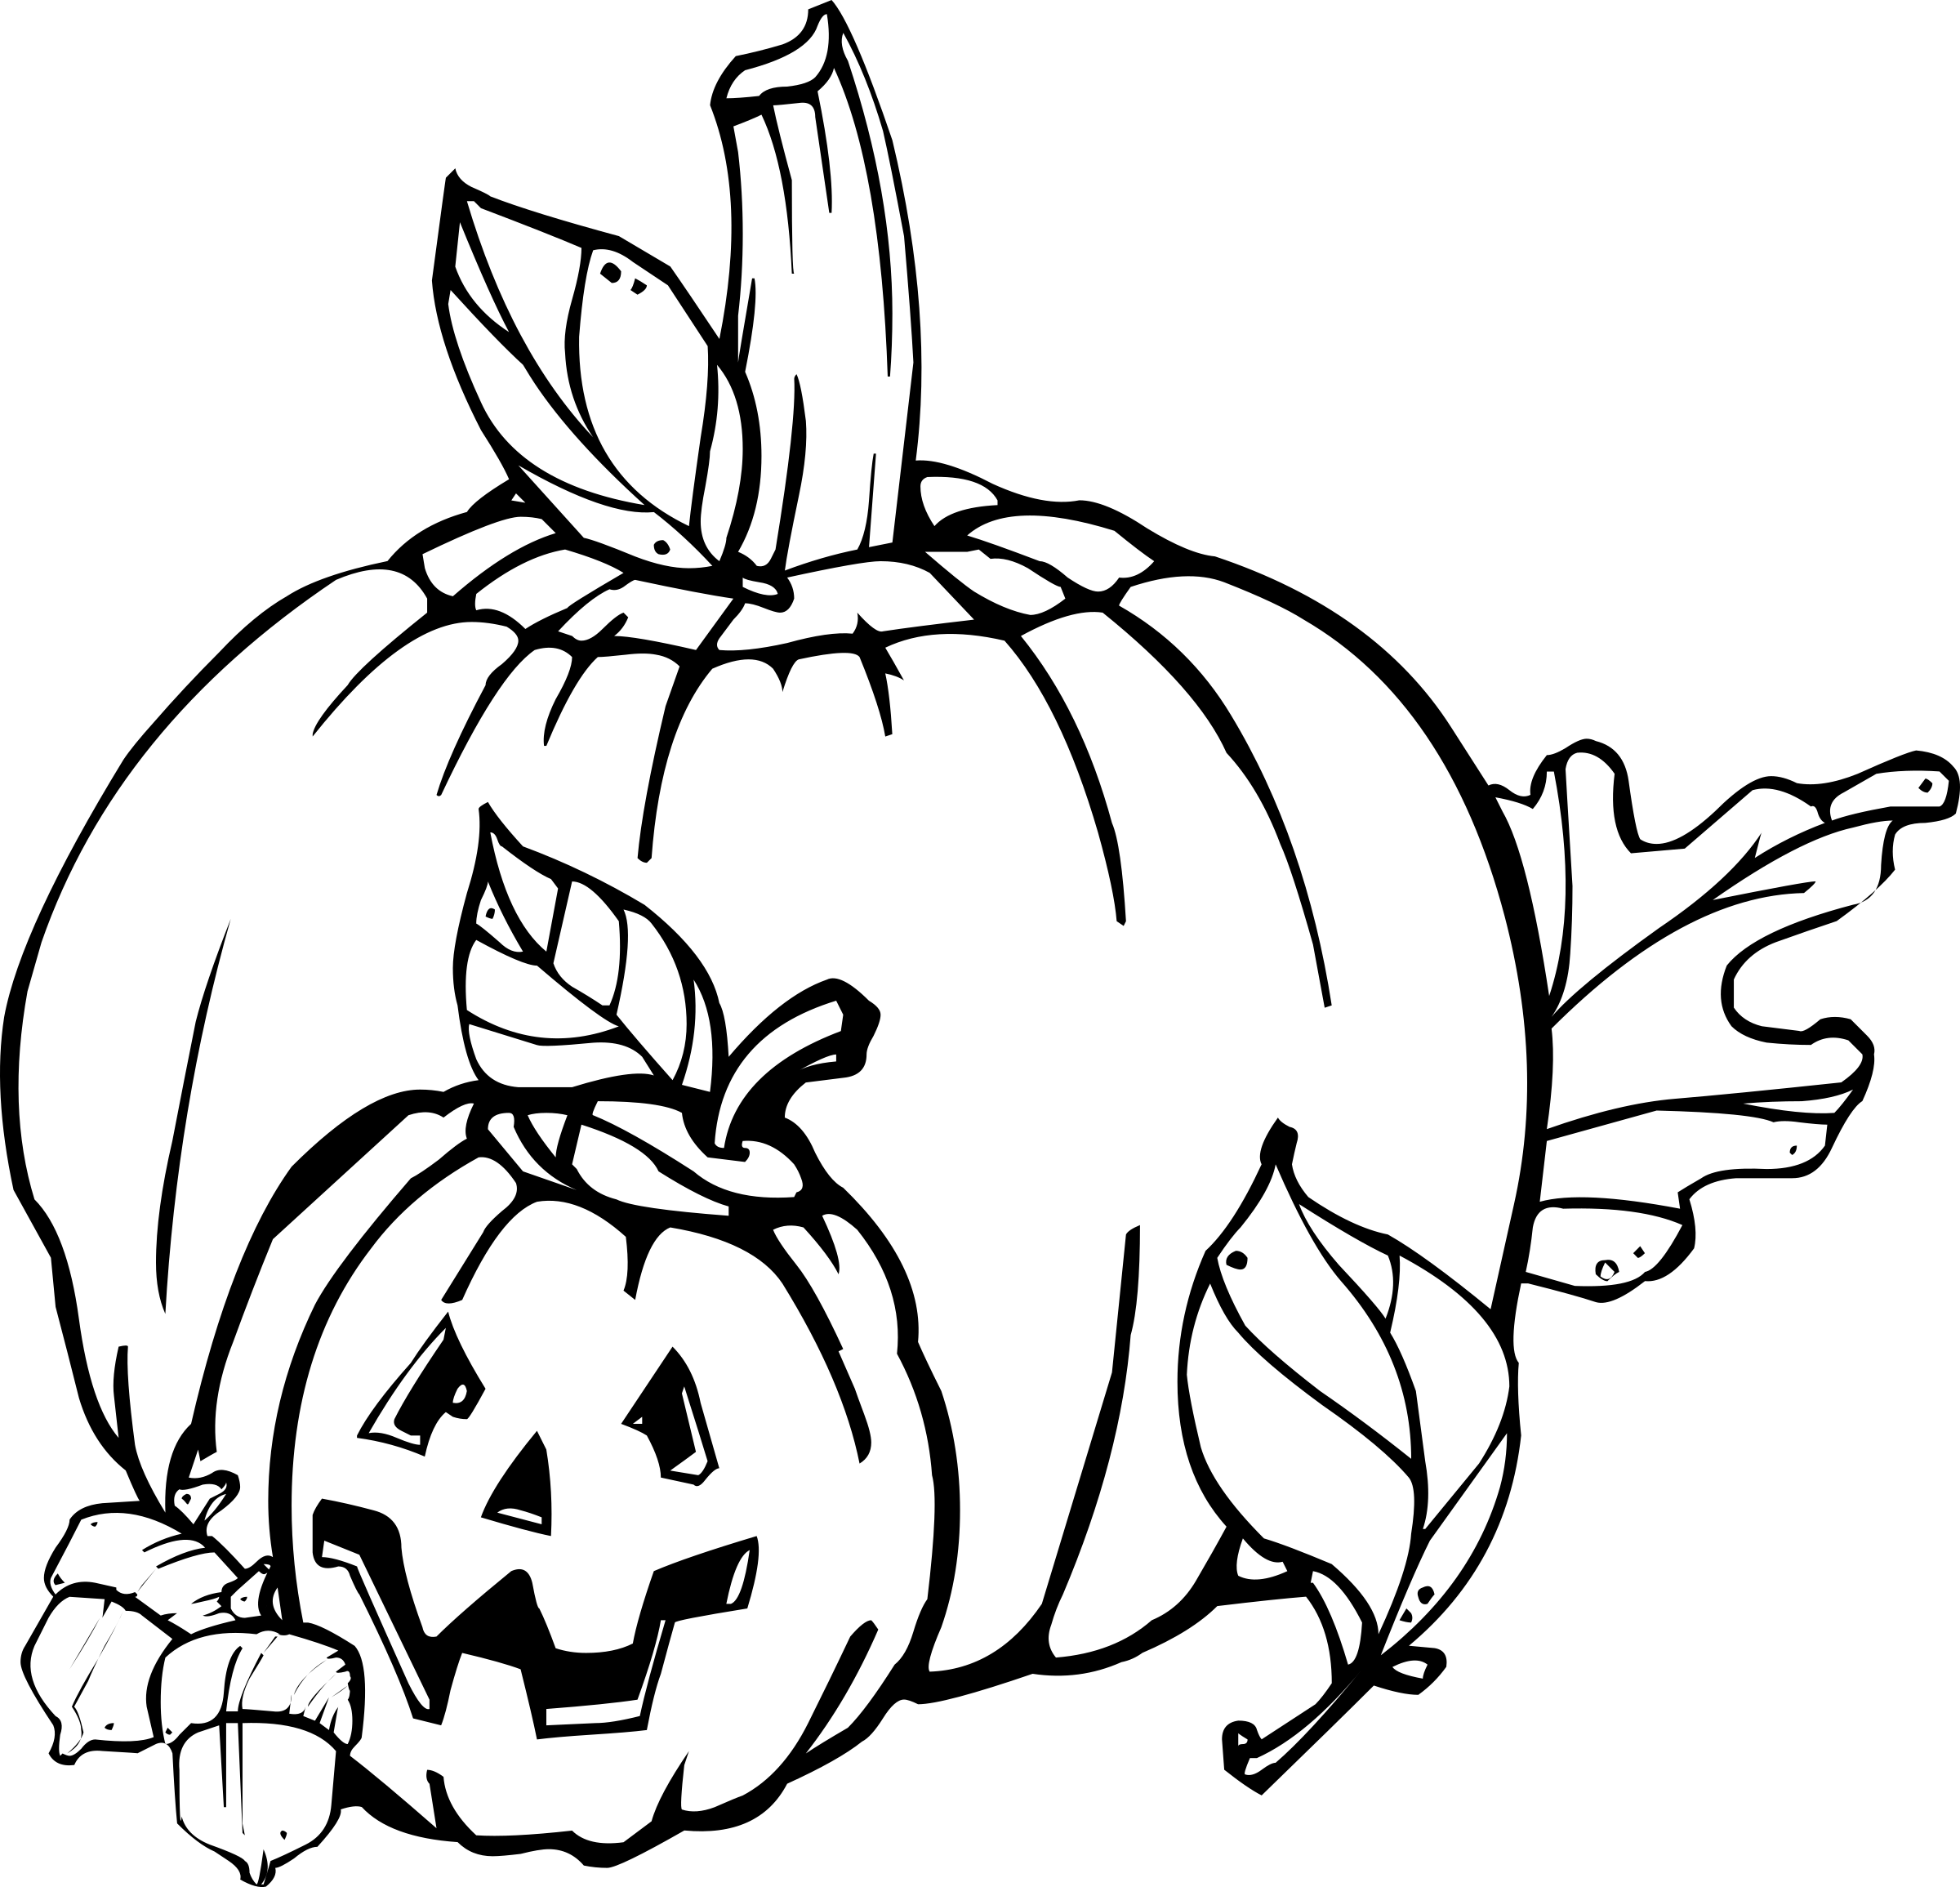 Cute pumpkin faces clipart banner library Pumpkin Image Black And White | Free download best Pumpkin Image ... banner library